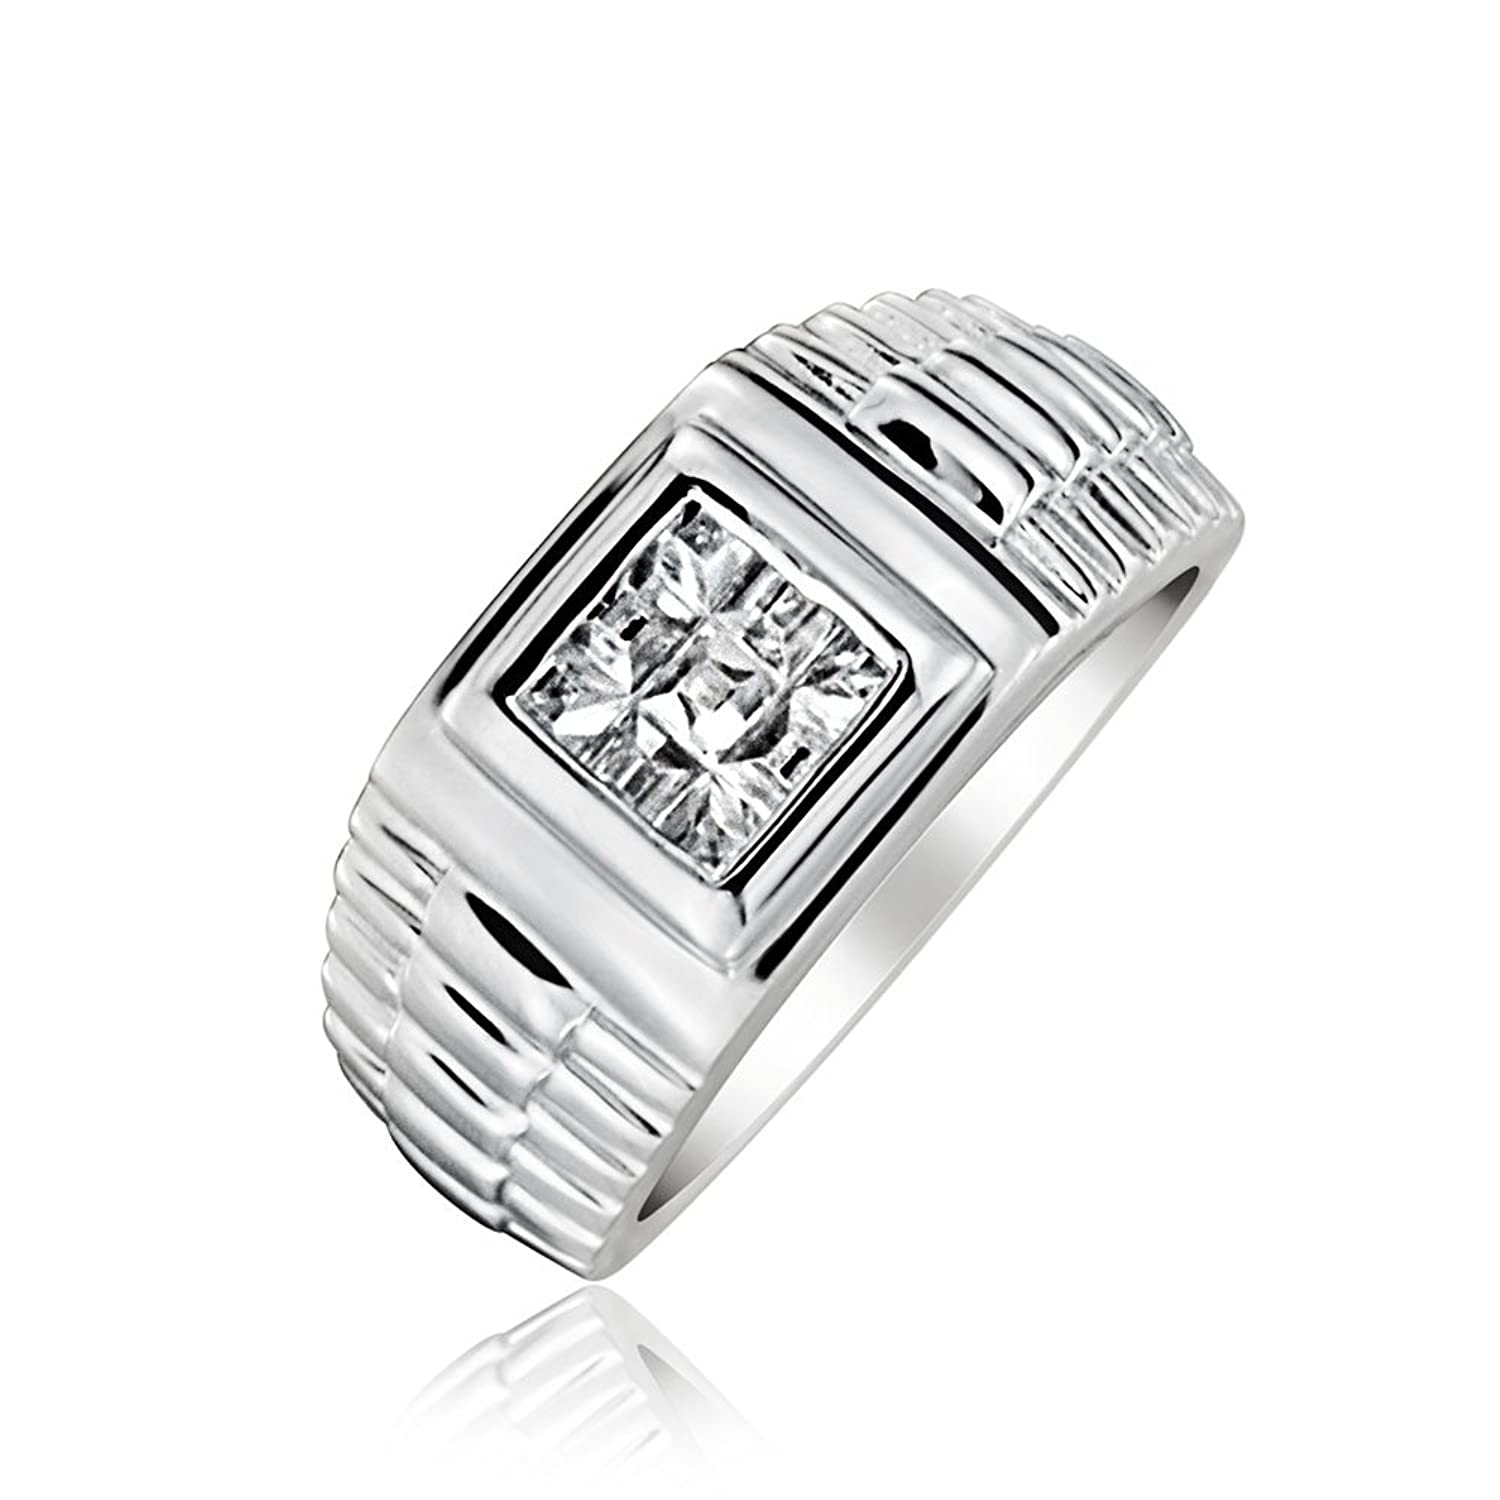 Amazon.com: Bling Jewelry .925 Silver Invisible Cut CZ Watch Band ...